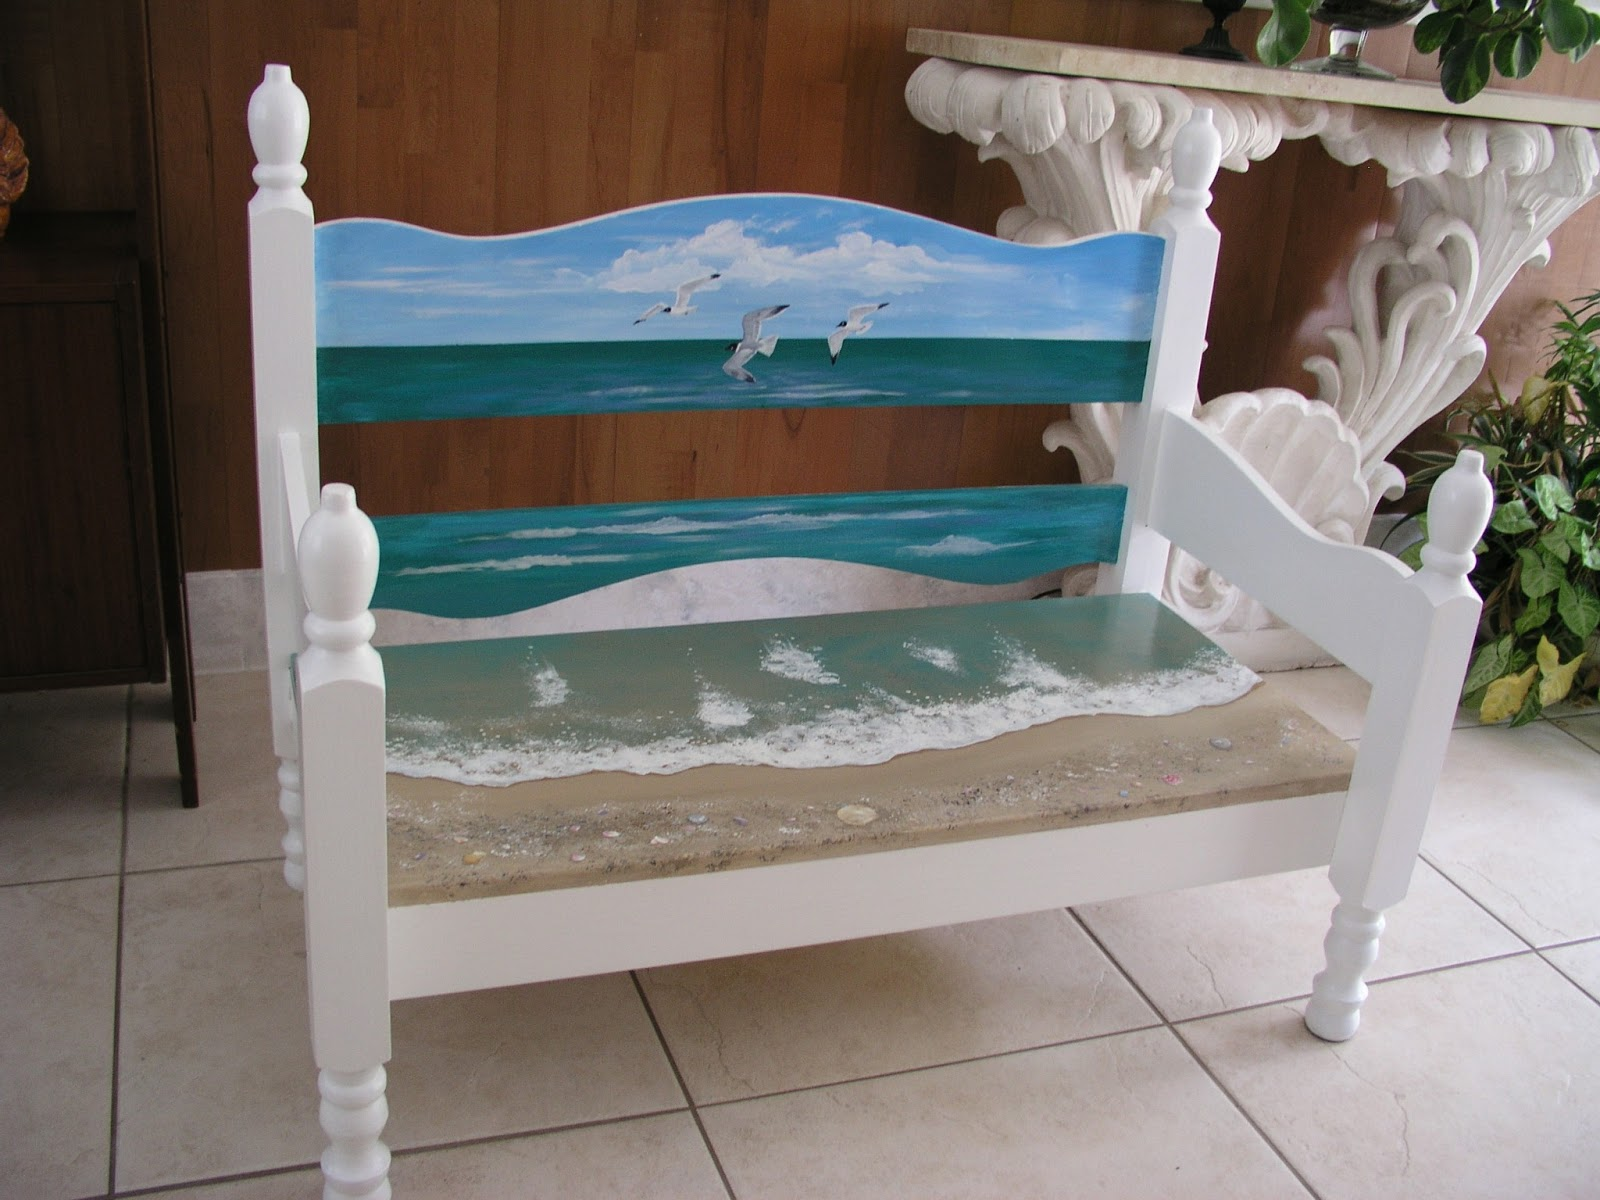 benchsite: Sea benches for World Oceans Day